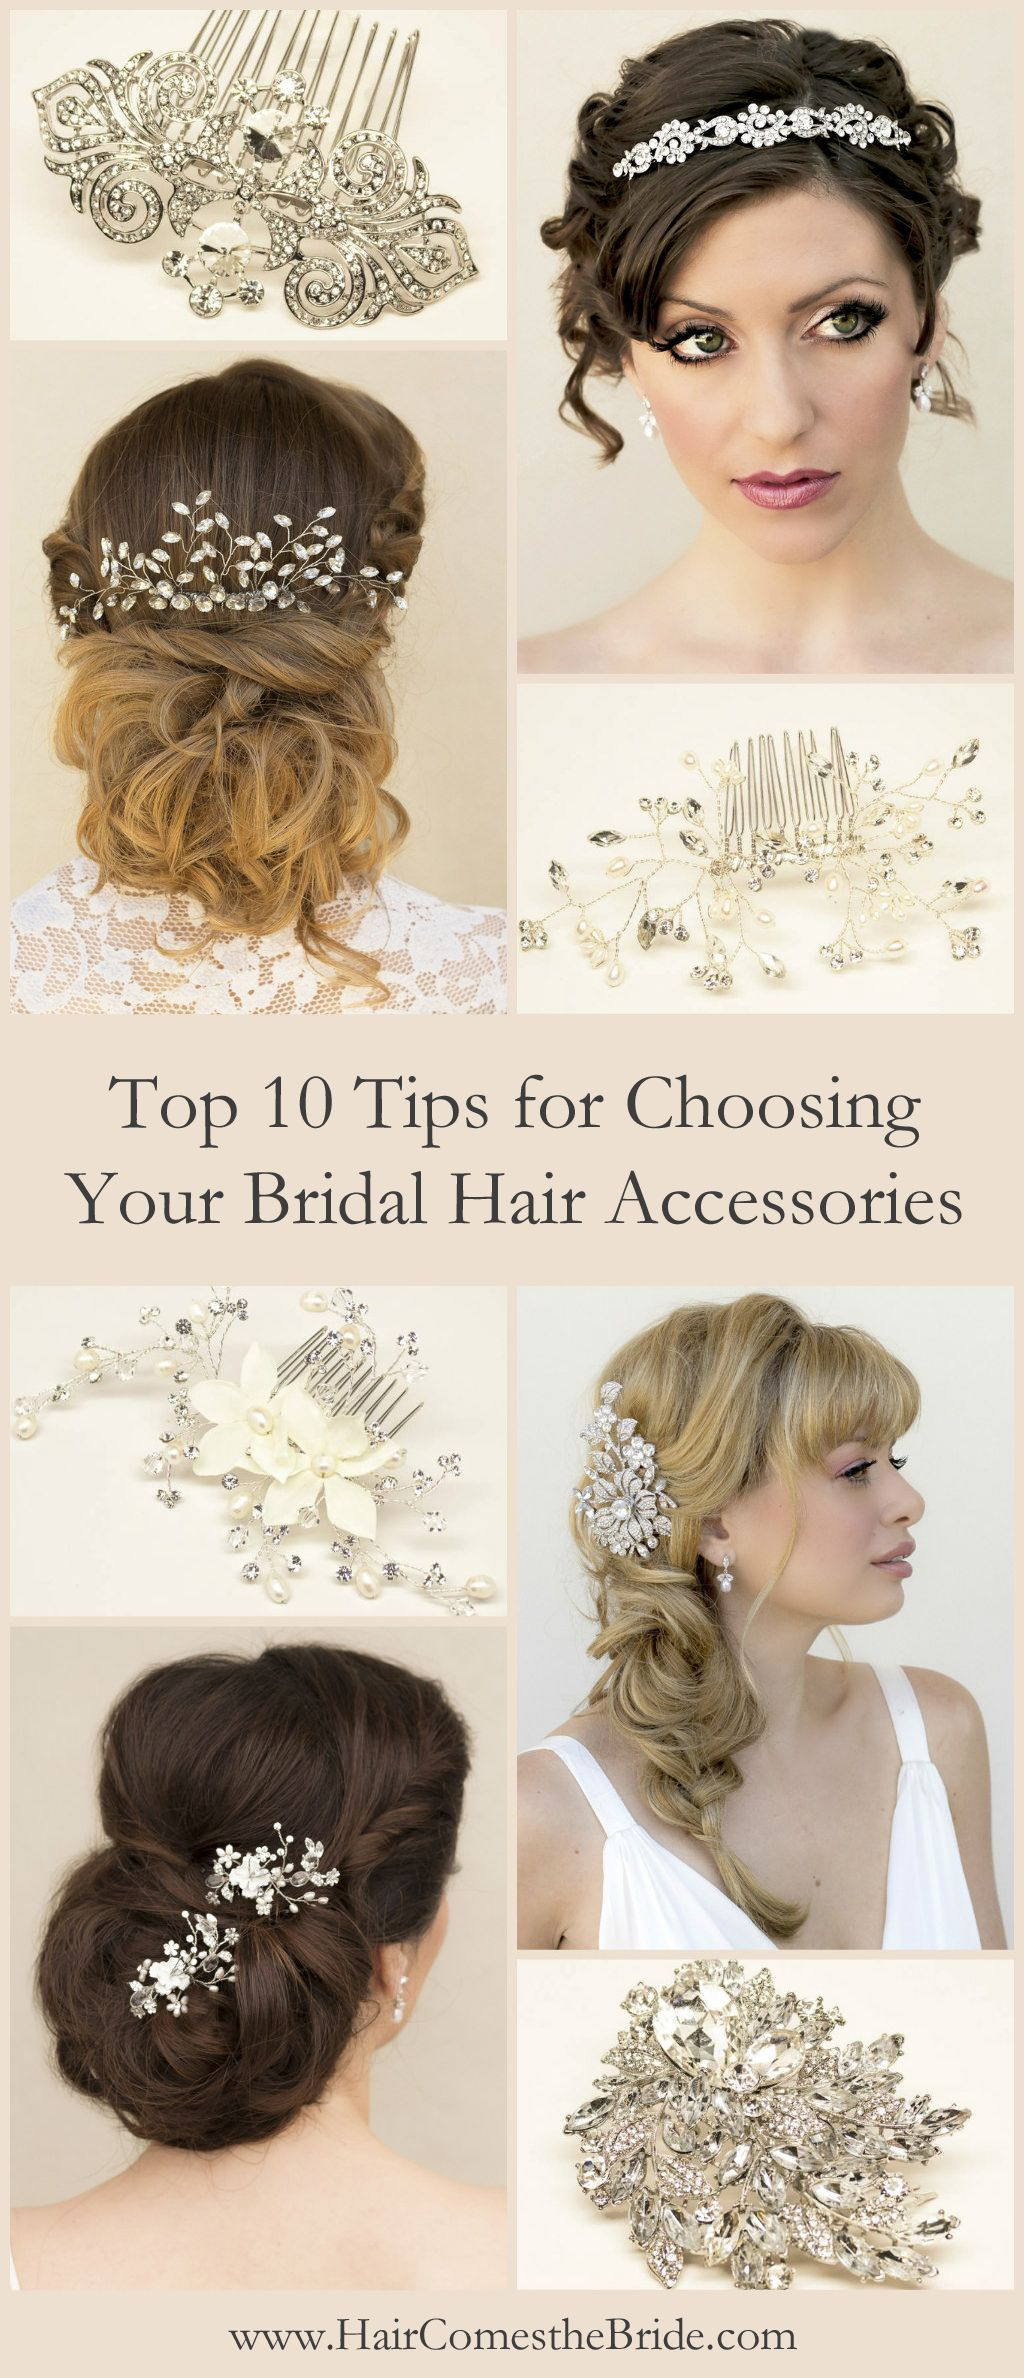 Top 10 Tips for Choosing Your Bridal Hair Accessories | Bridal hair ...